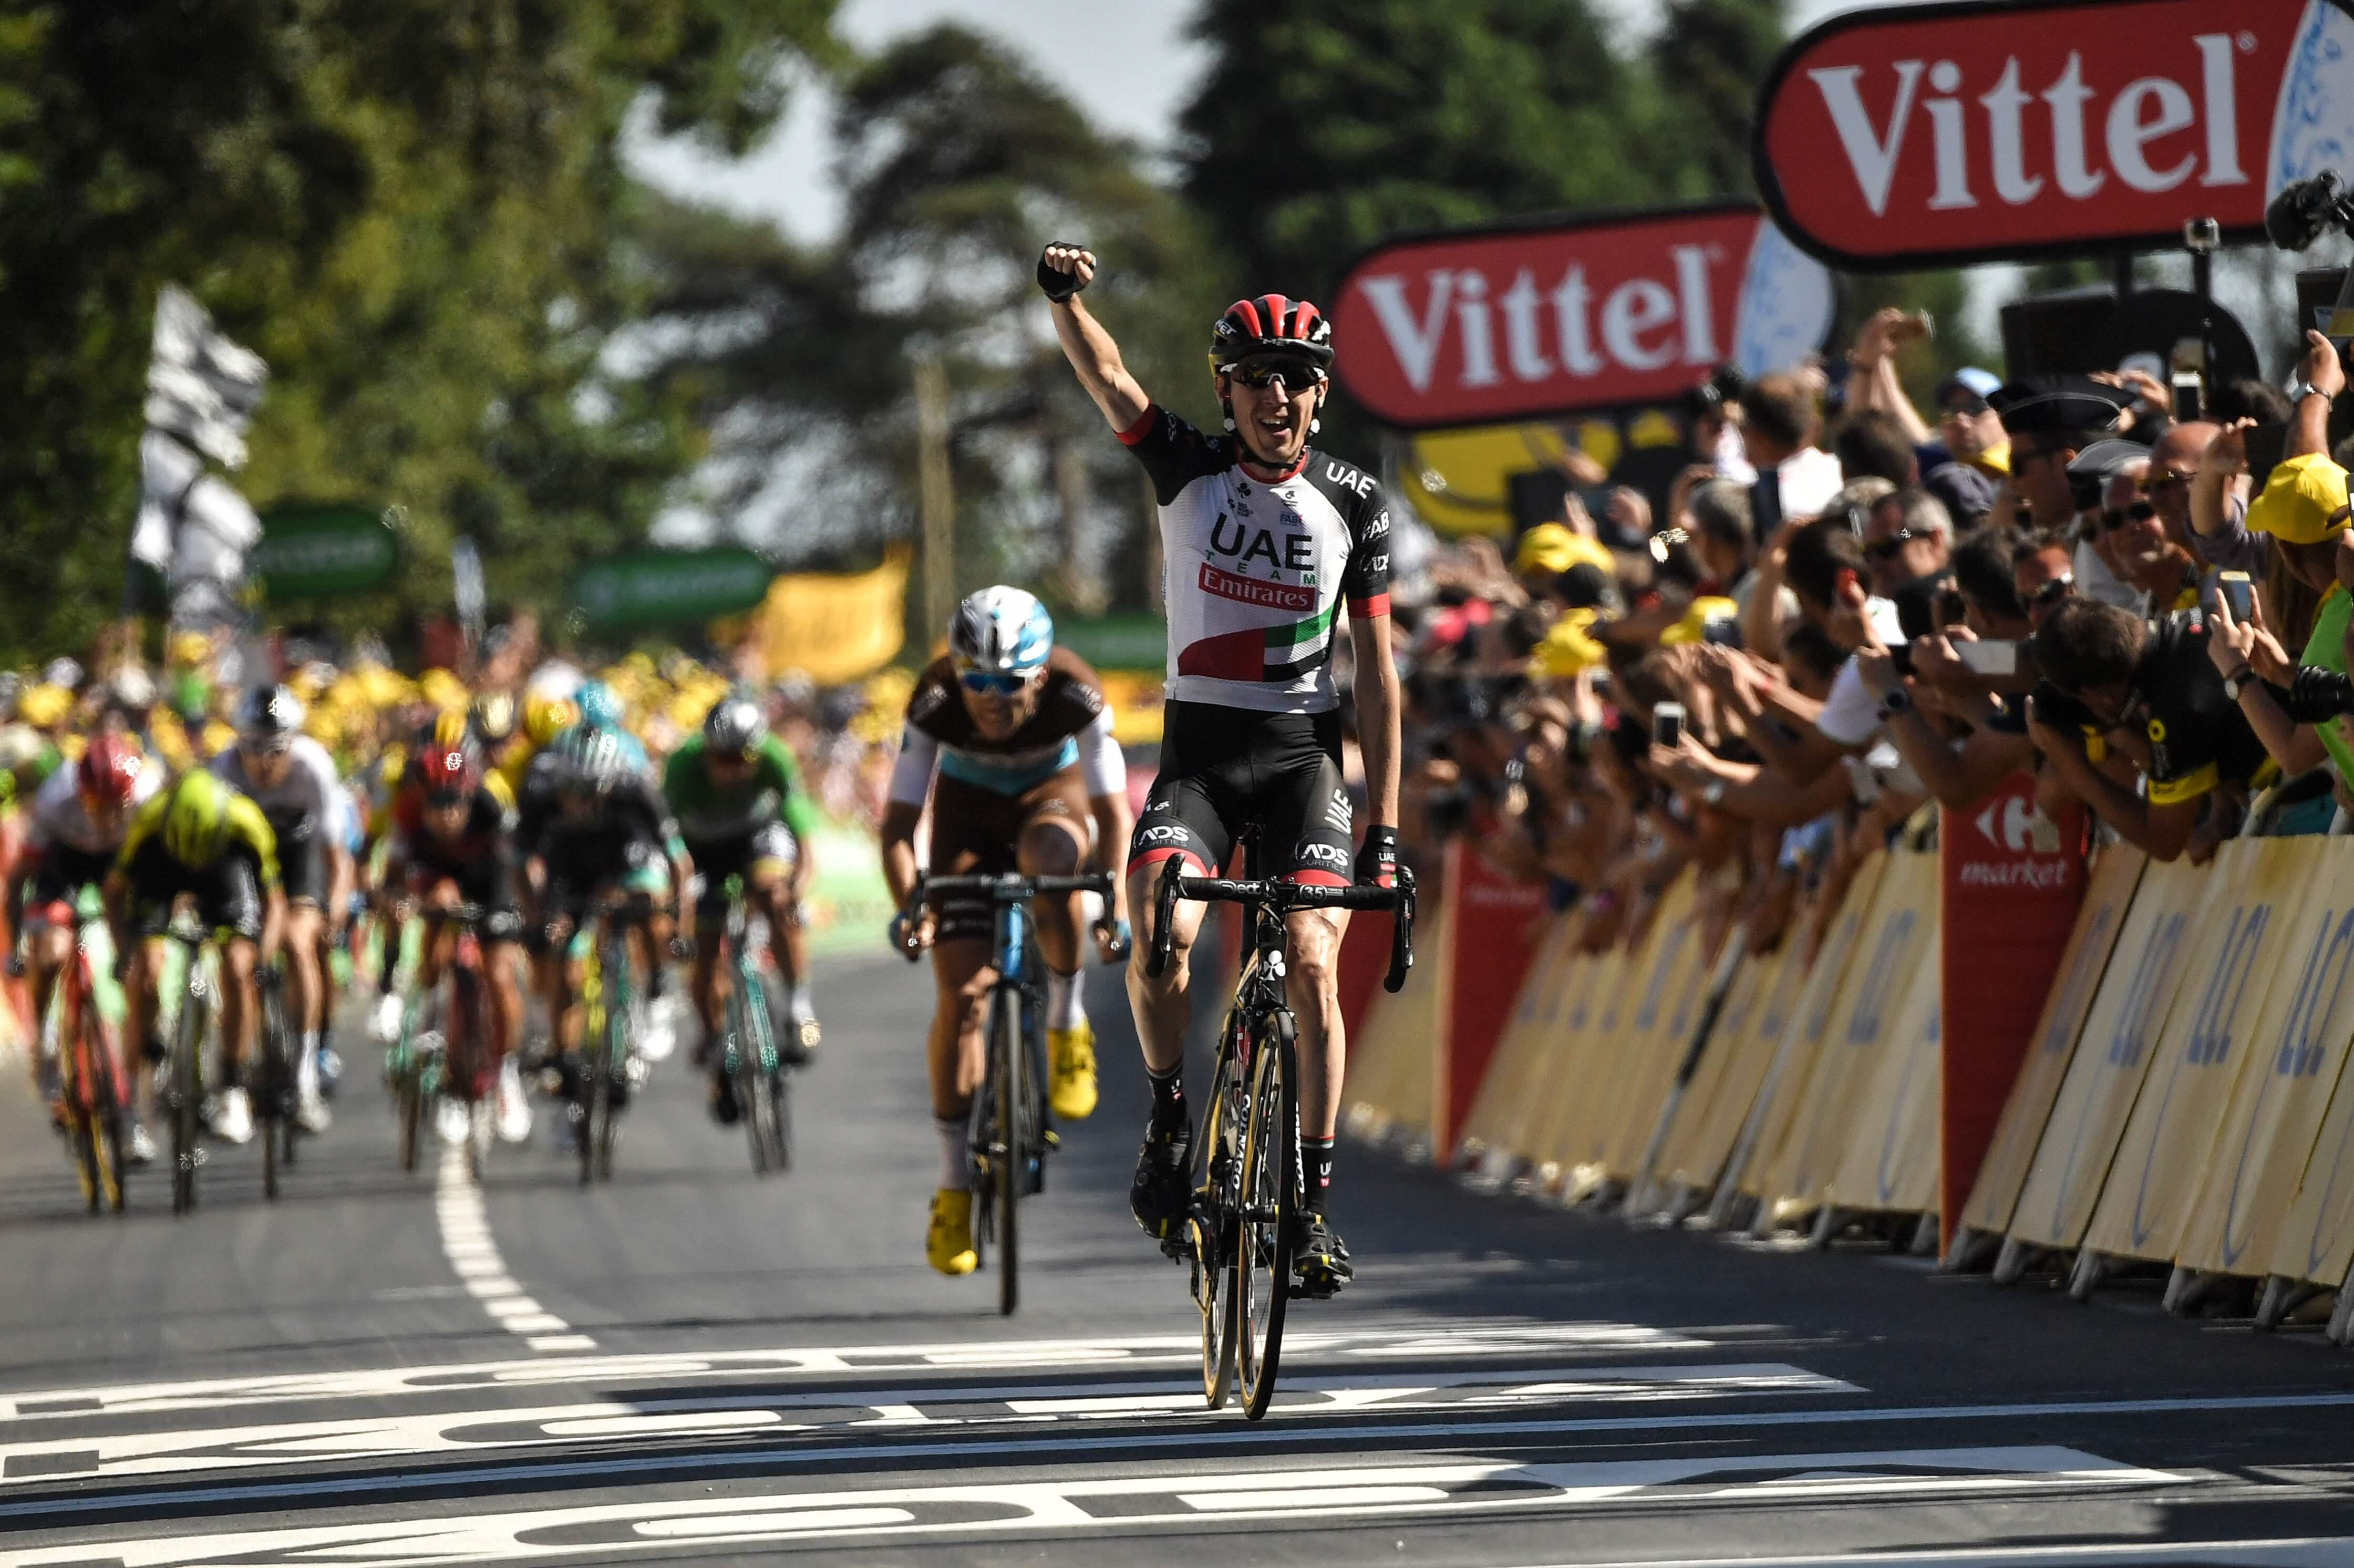 Dan Martin clinched stage victory at Mur-de-Bretagne in Brittany